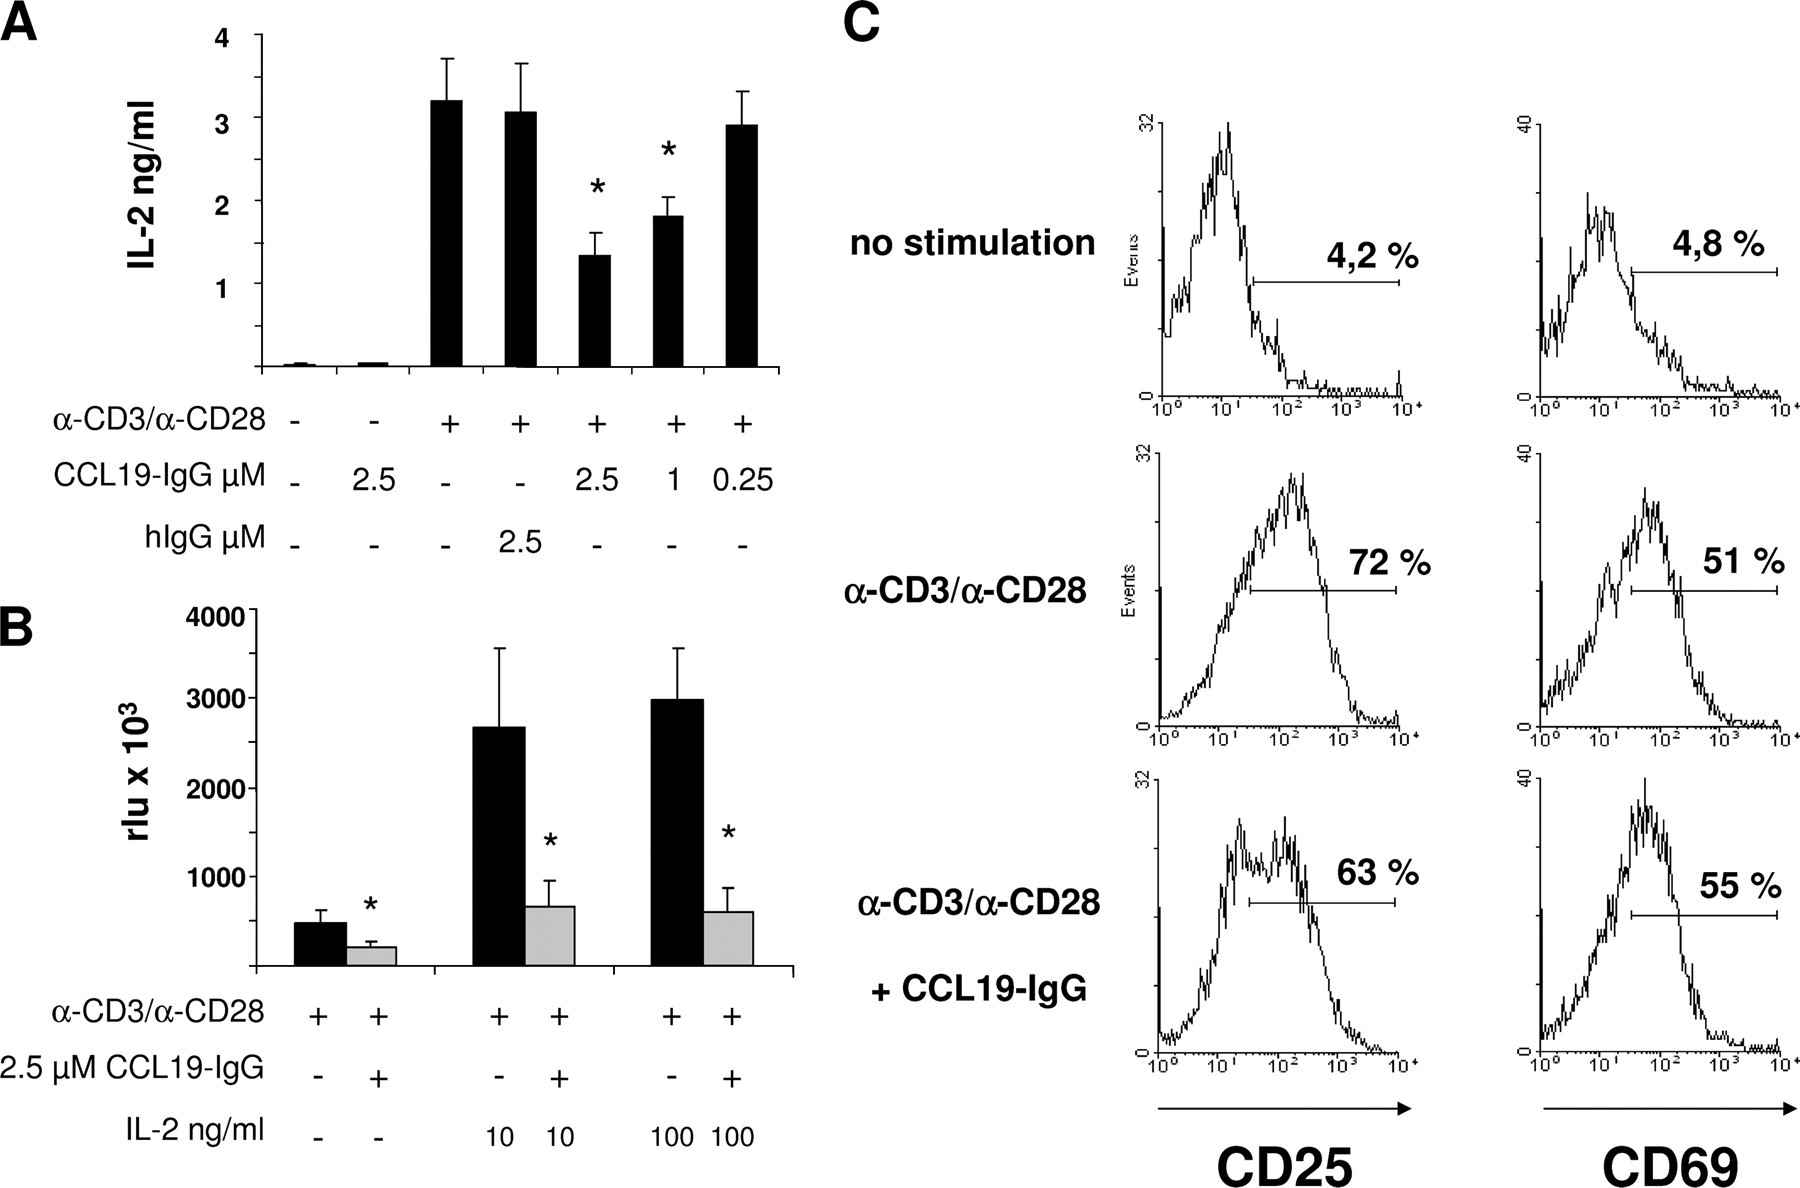 ccr7 signaling inhibits t cell proliferation